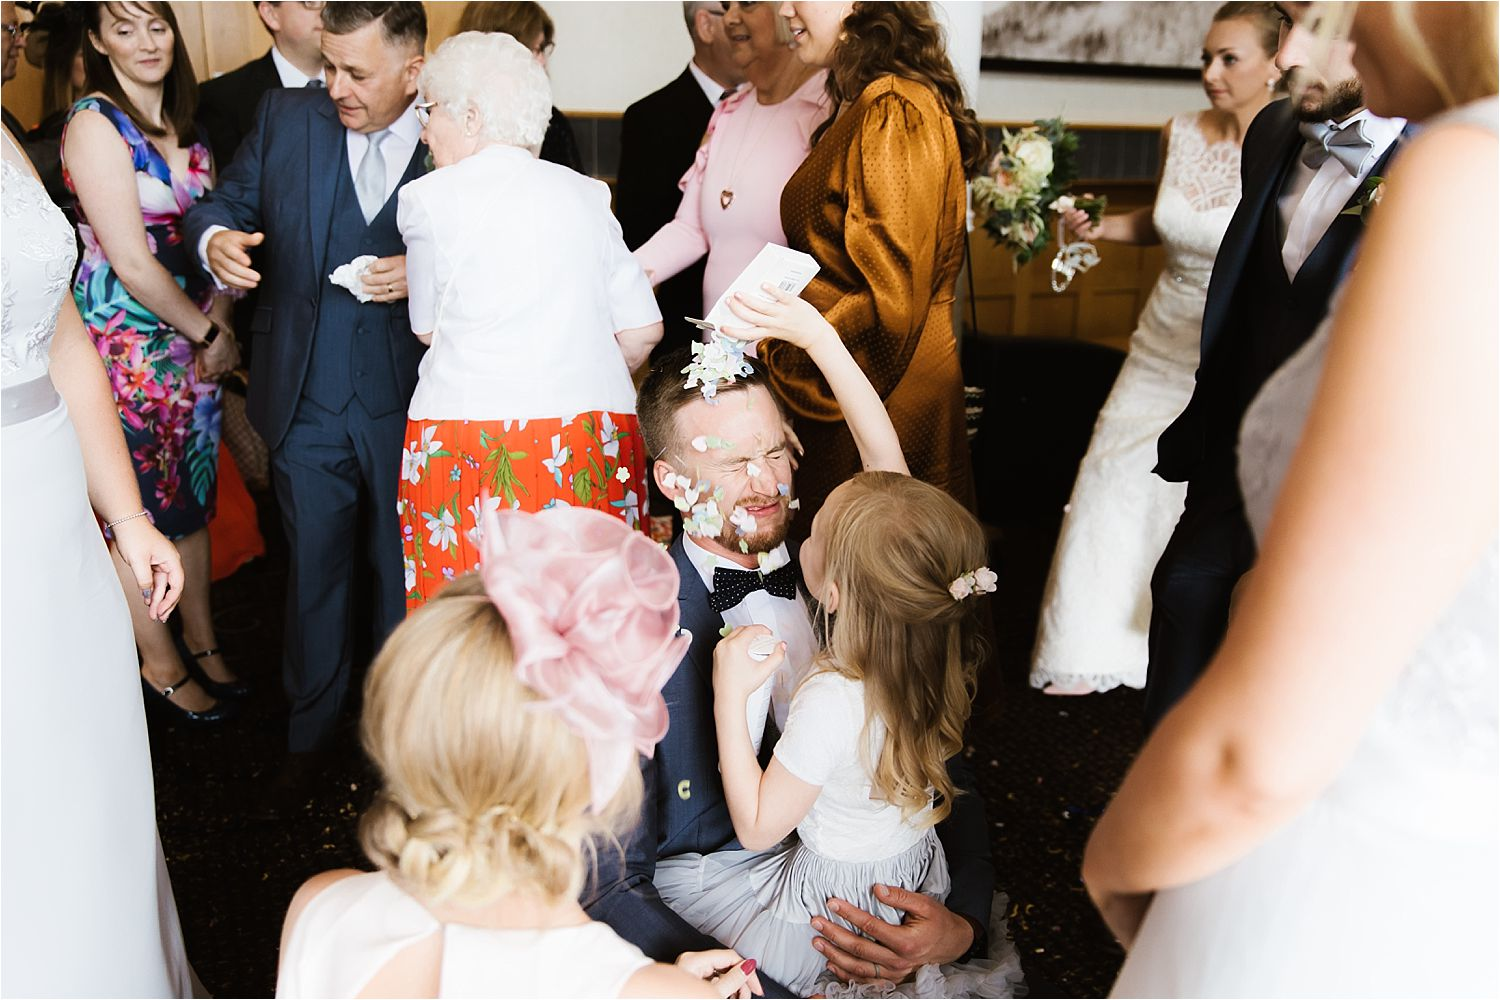 Flower girl empties confetti on groom's head at Low Wood Bay wedding